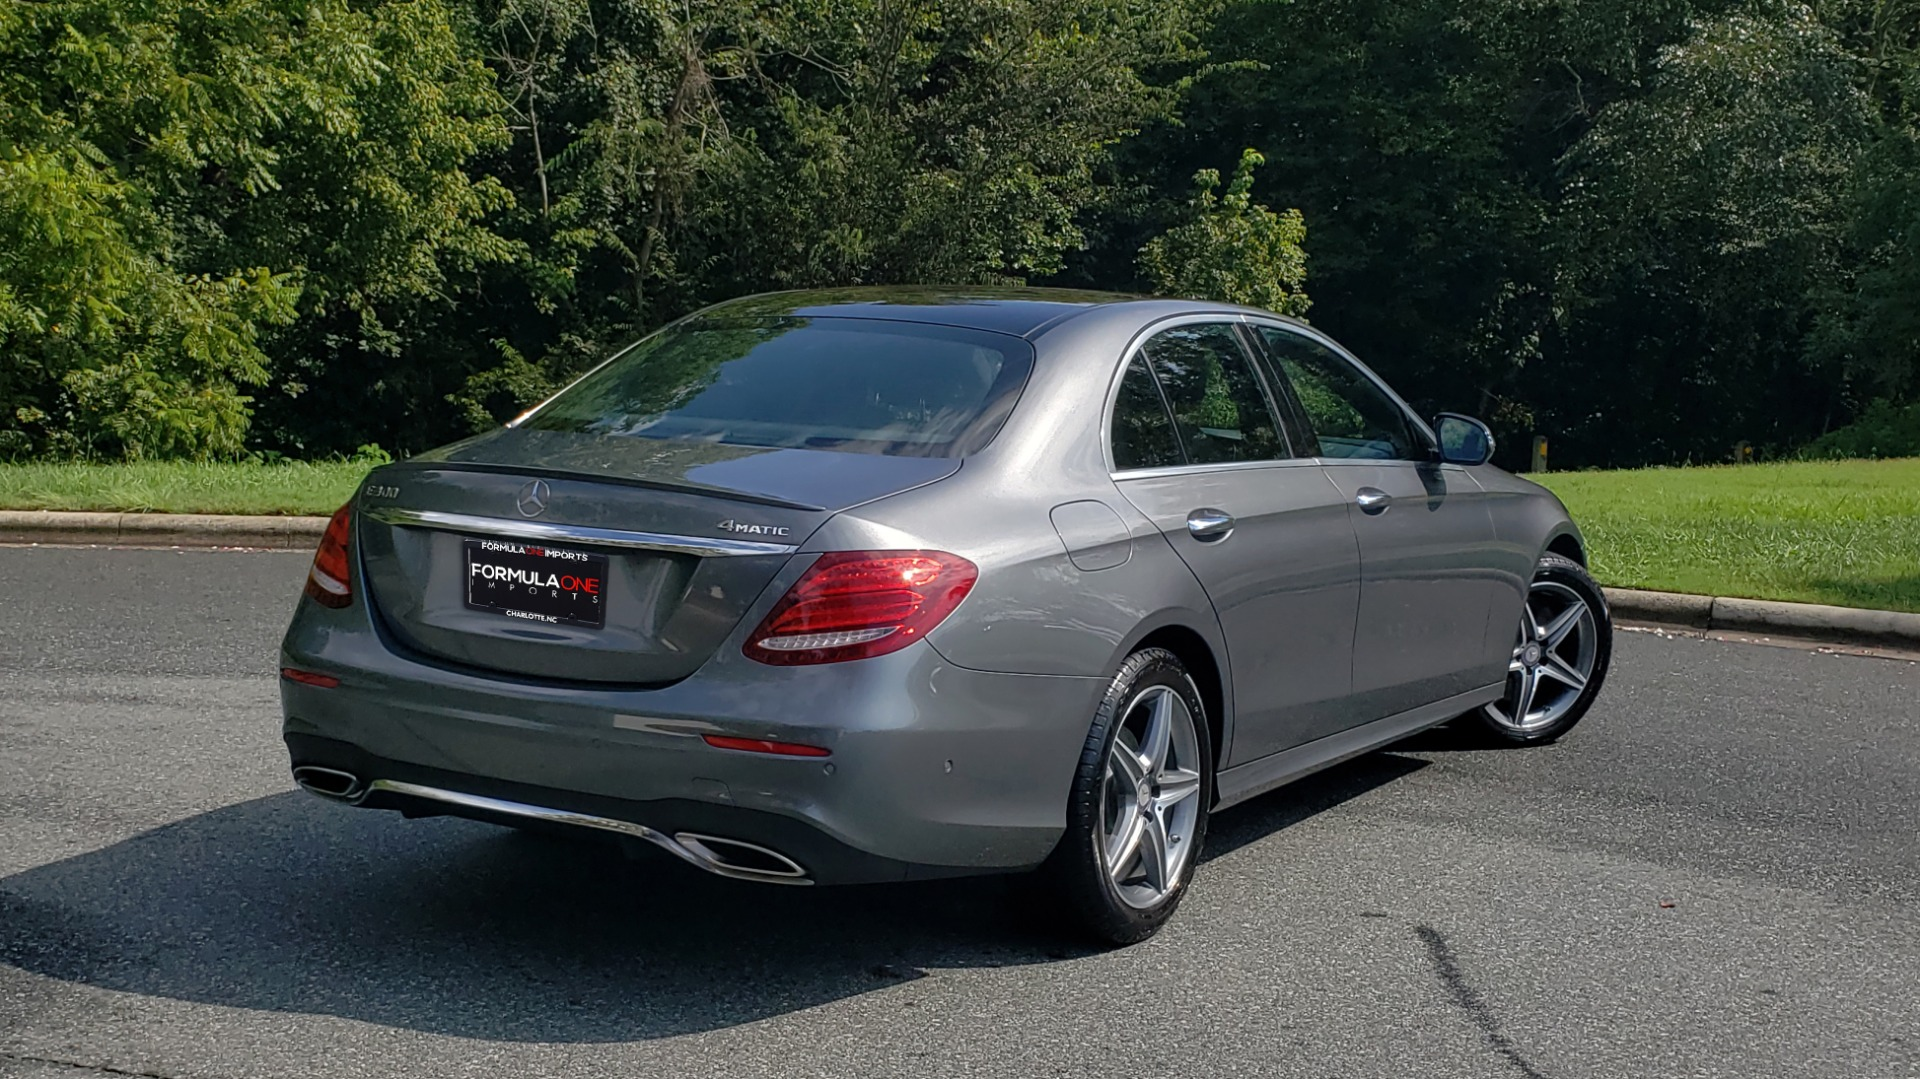 Used 2017 Mercedes-Benz E-CLASS E 300 SPORT / NAV / SUNROOF / HTD STS / BURMESTER / REARVIEW for sale Sold at Formula Imports in Charlotte NC 28227 6